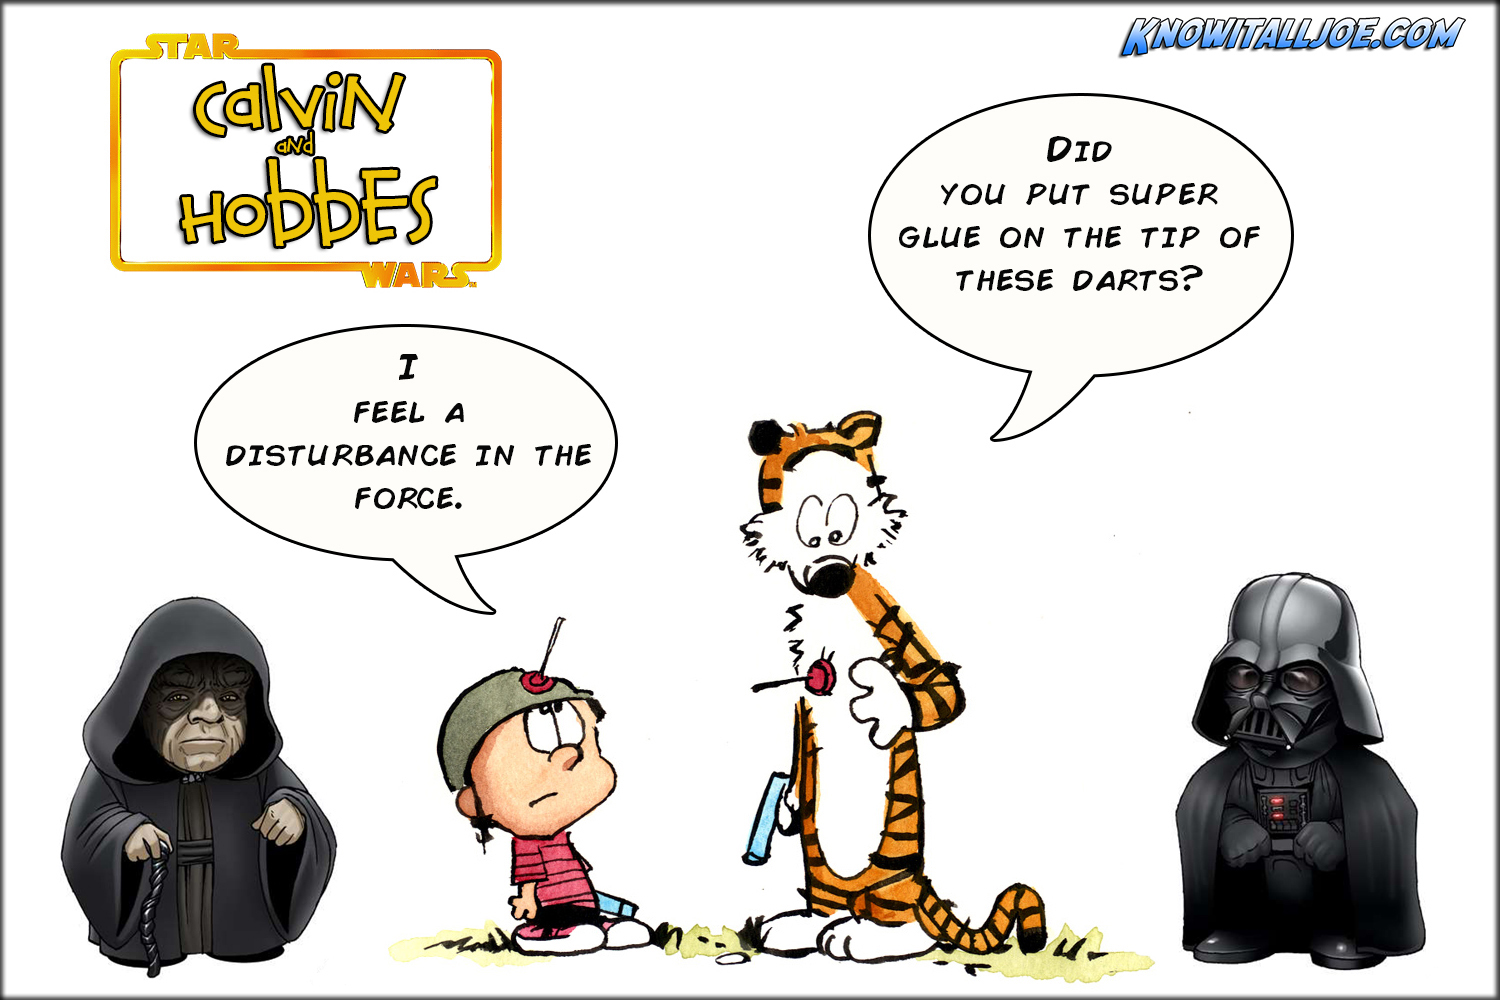 Star Wars Calvin And Hobbes With Border